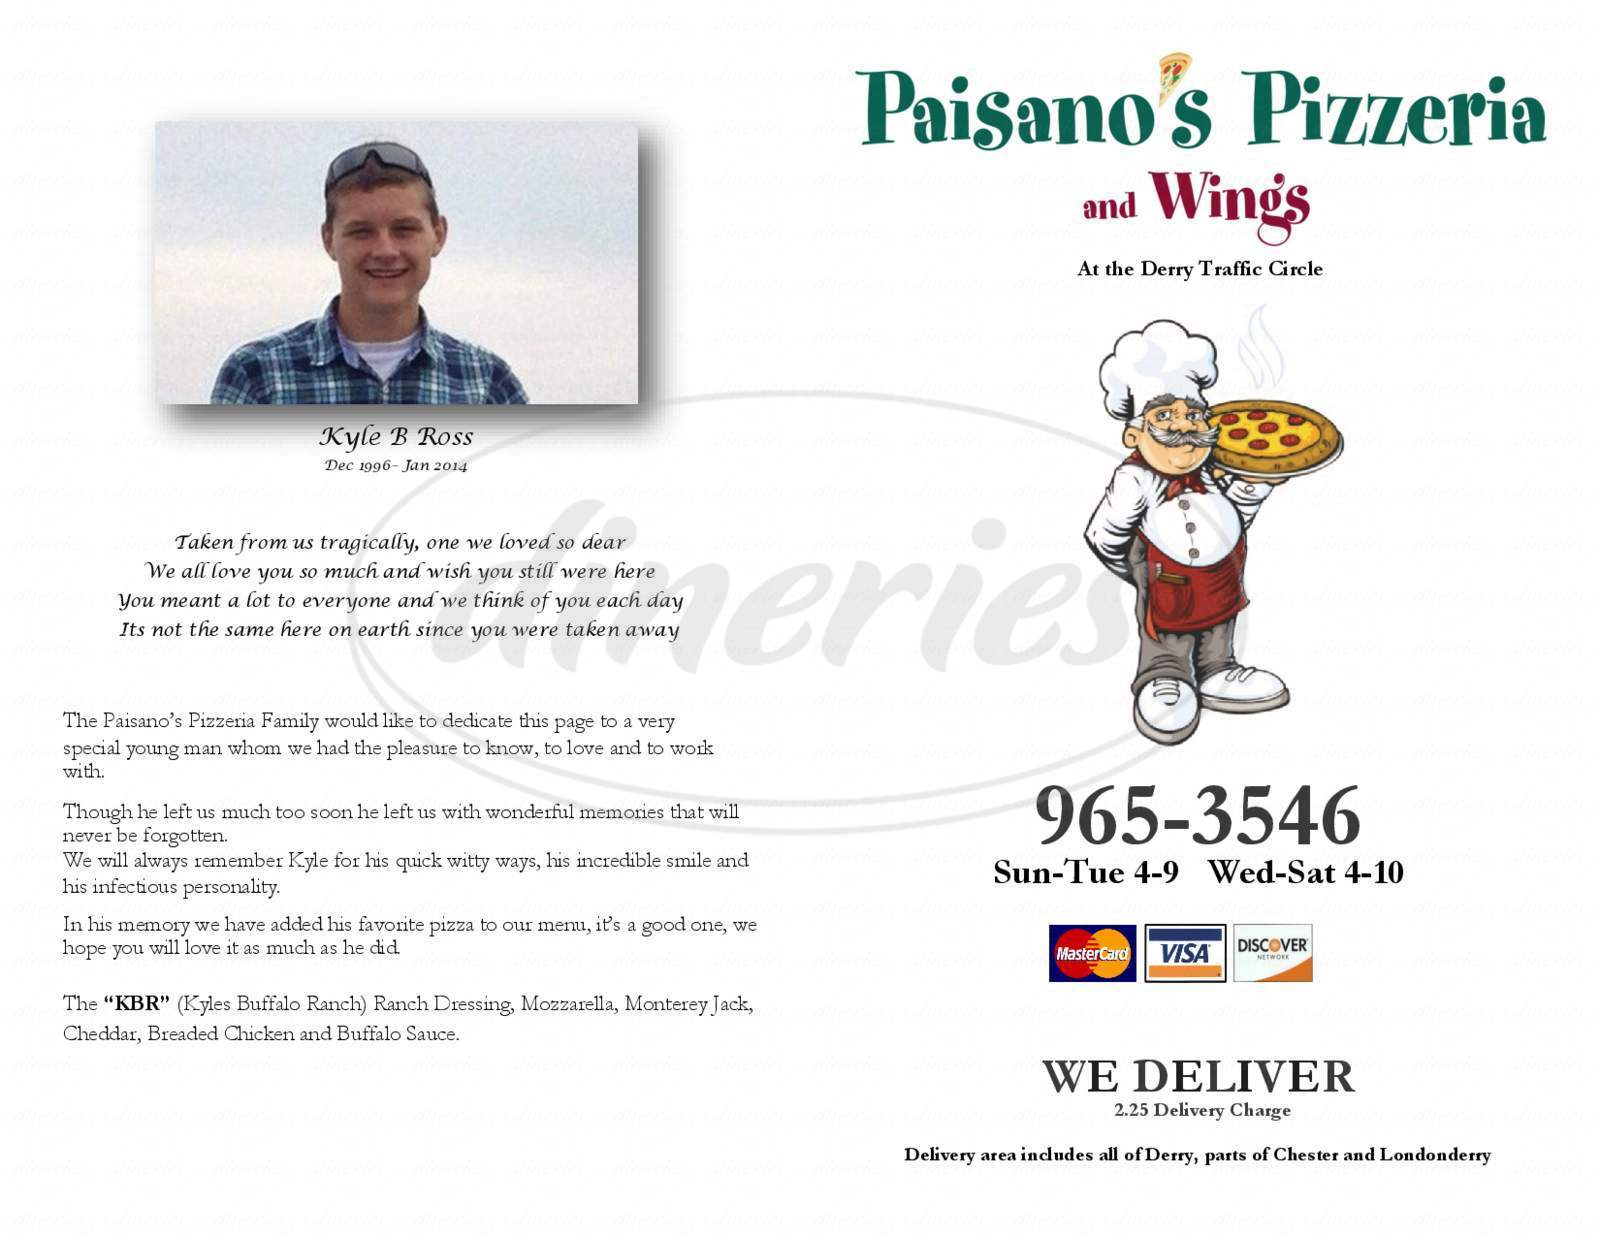 menu for Paisano's Pizzeria